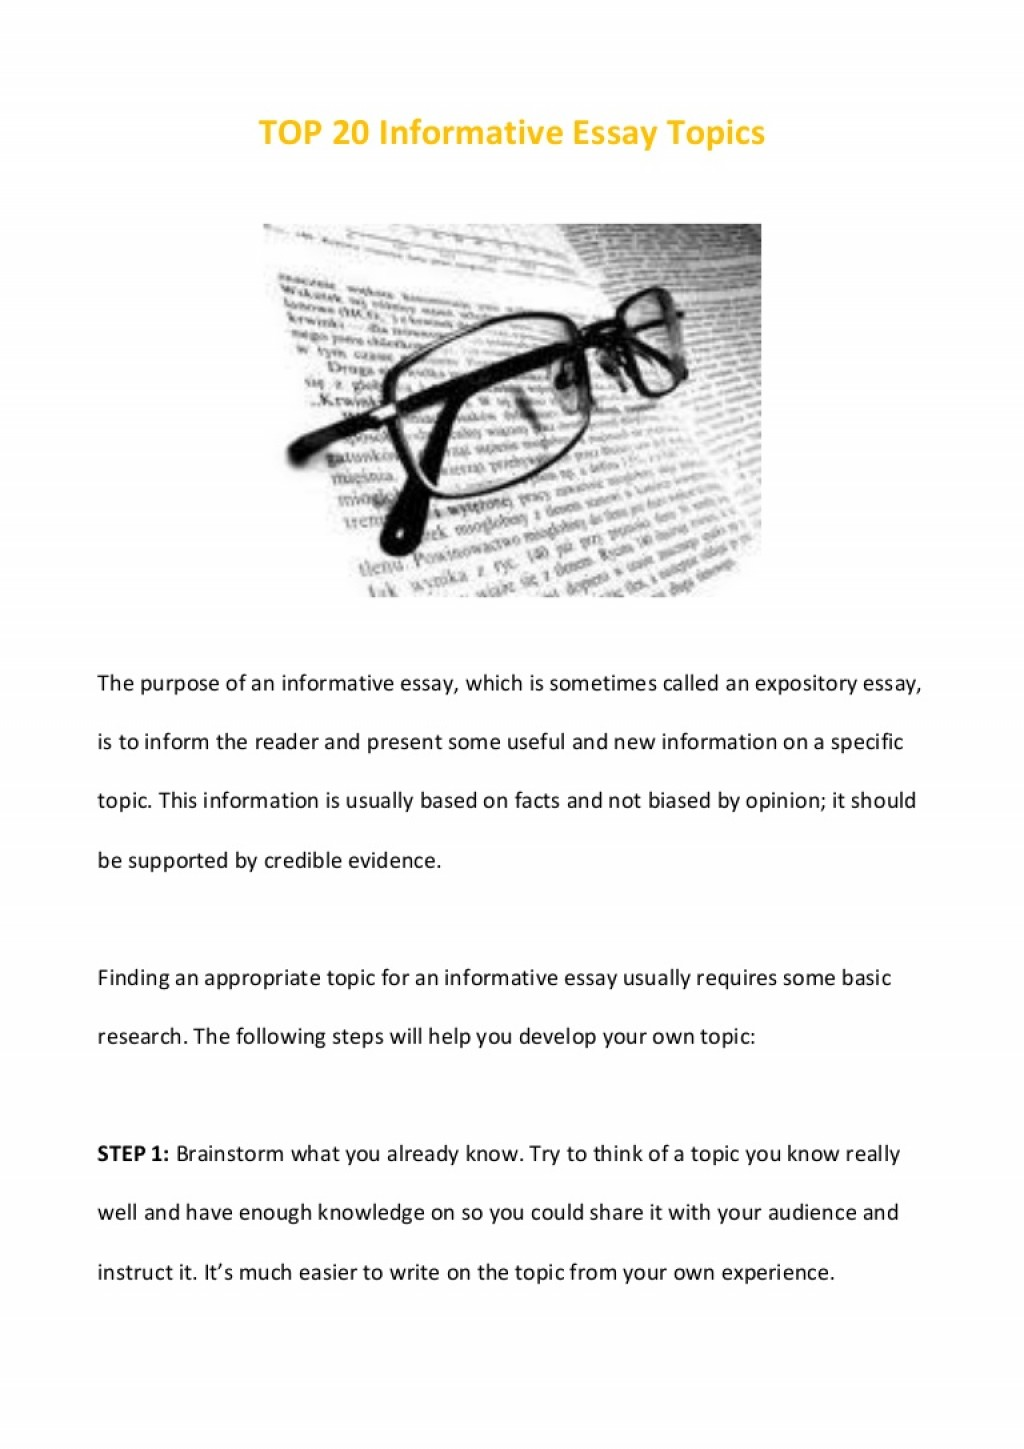 011 Essay Example Top20informativeessaytopics Phpapp02 Thumbnail Informative Remarkable Topics Expository For Secondary School 4th Grade 5th Large